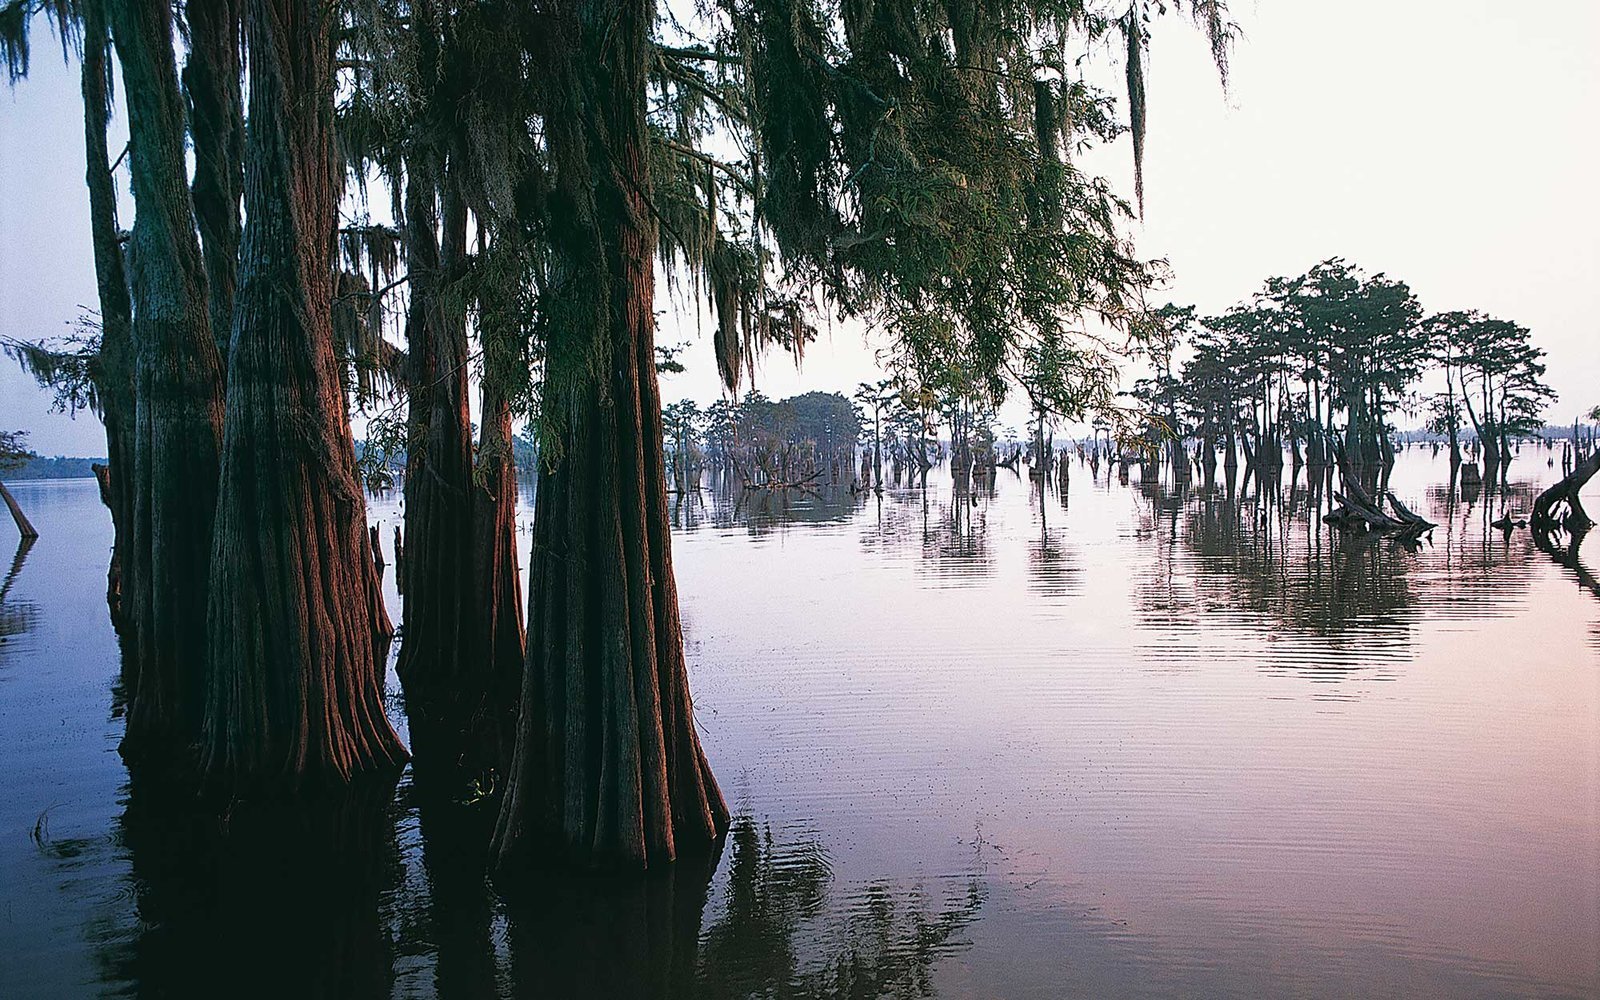 Atchafalaya, Louisiana